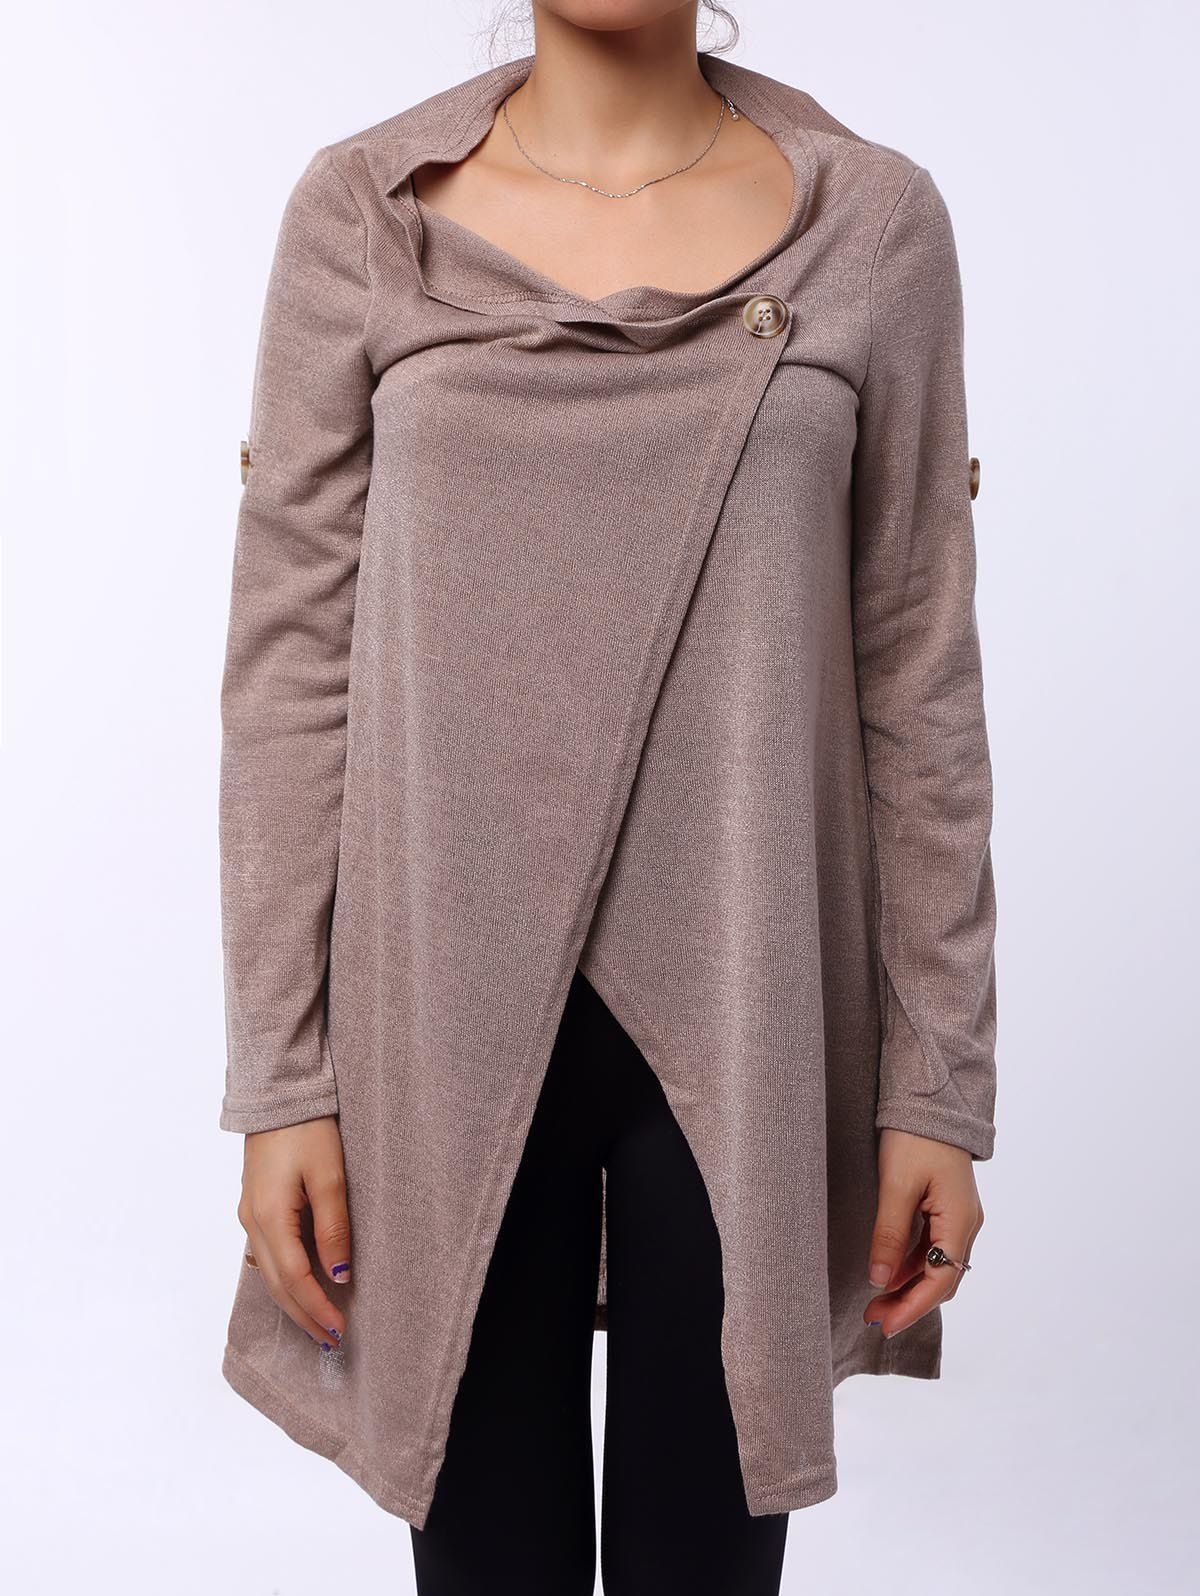 Graceful Cowl Neck Solid Color Slit Asymmetric Pullover Sweater For Women calvin klein new ivory black colorblock women s xs cowl neck sweater $89 090